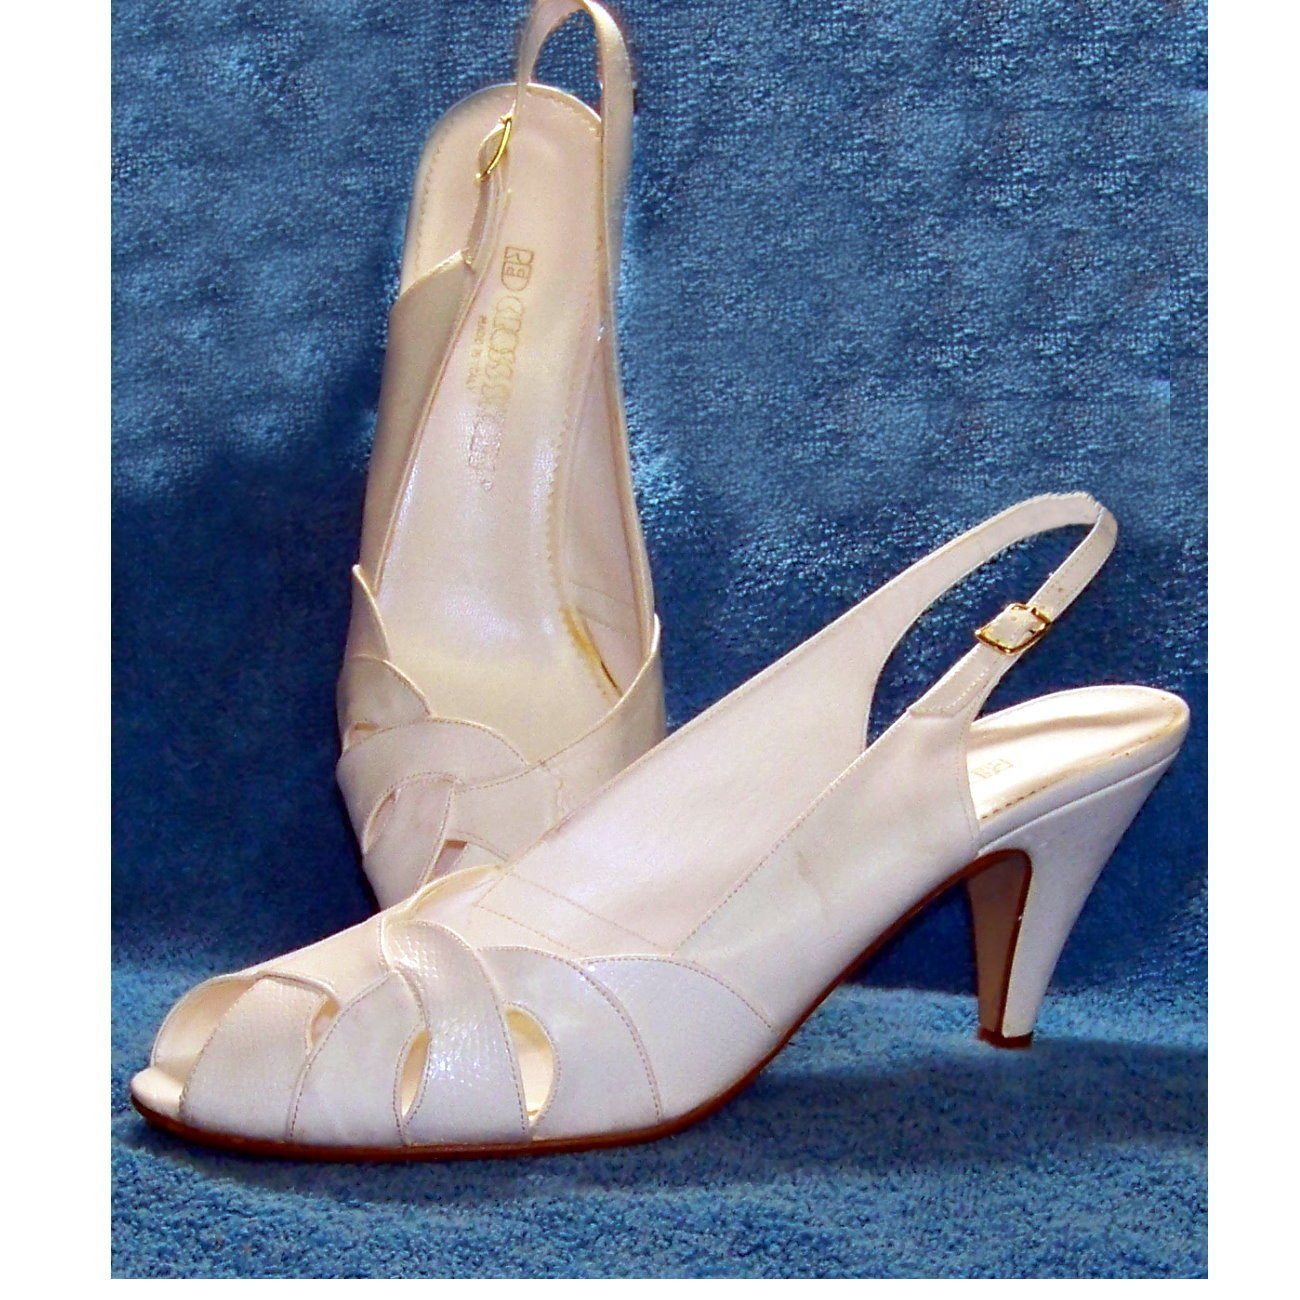 cc8b3ff28e2d Red Cross shoes white leather 10 M vintage and 50 similar items.  Redcrosswhitesgal